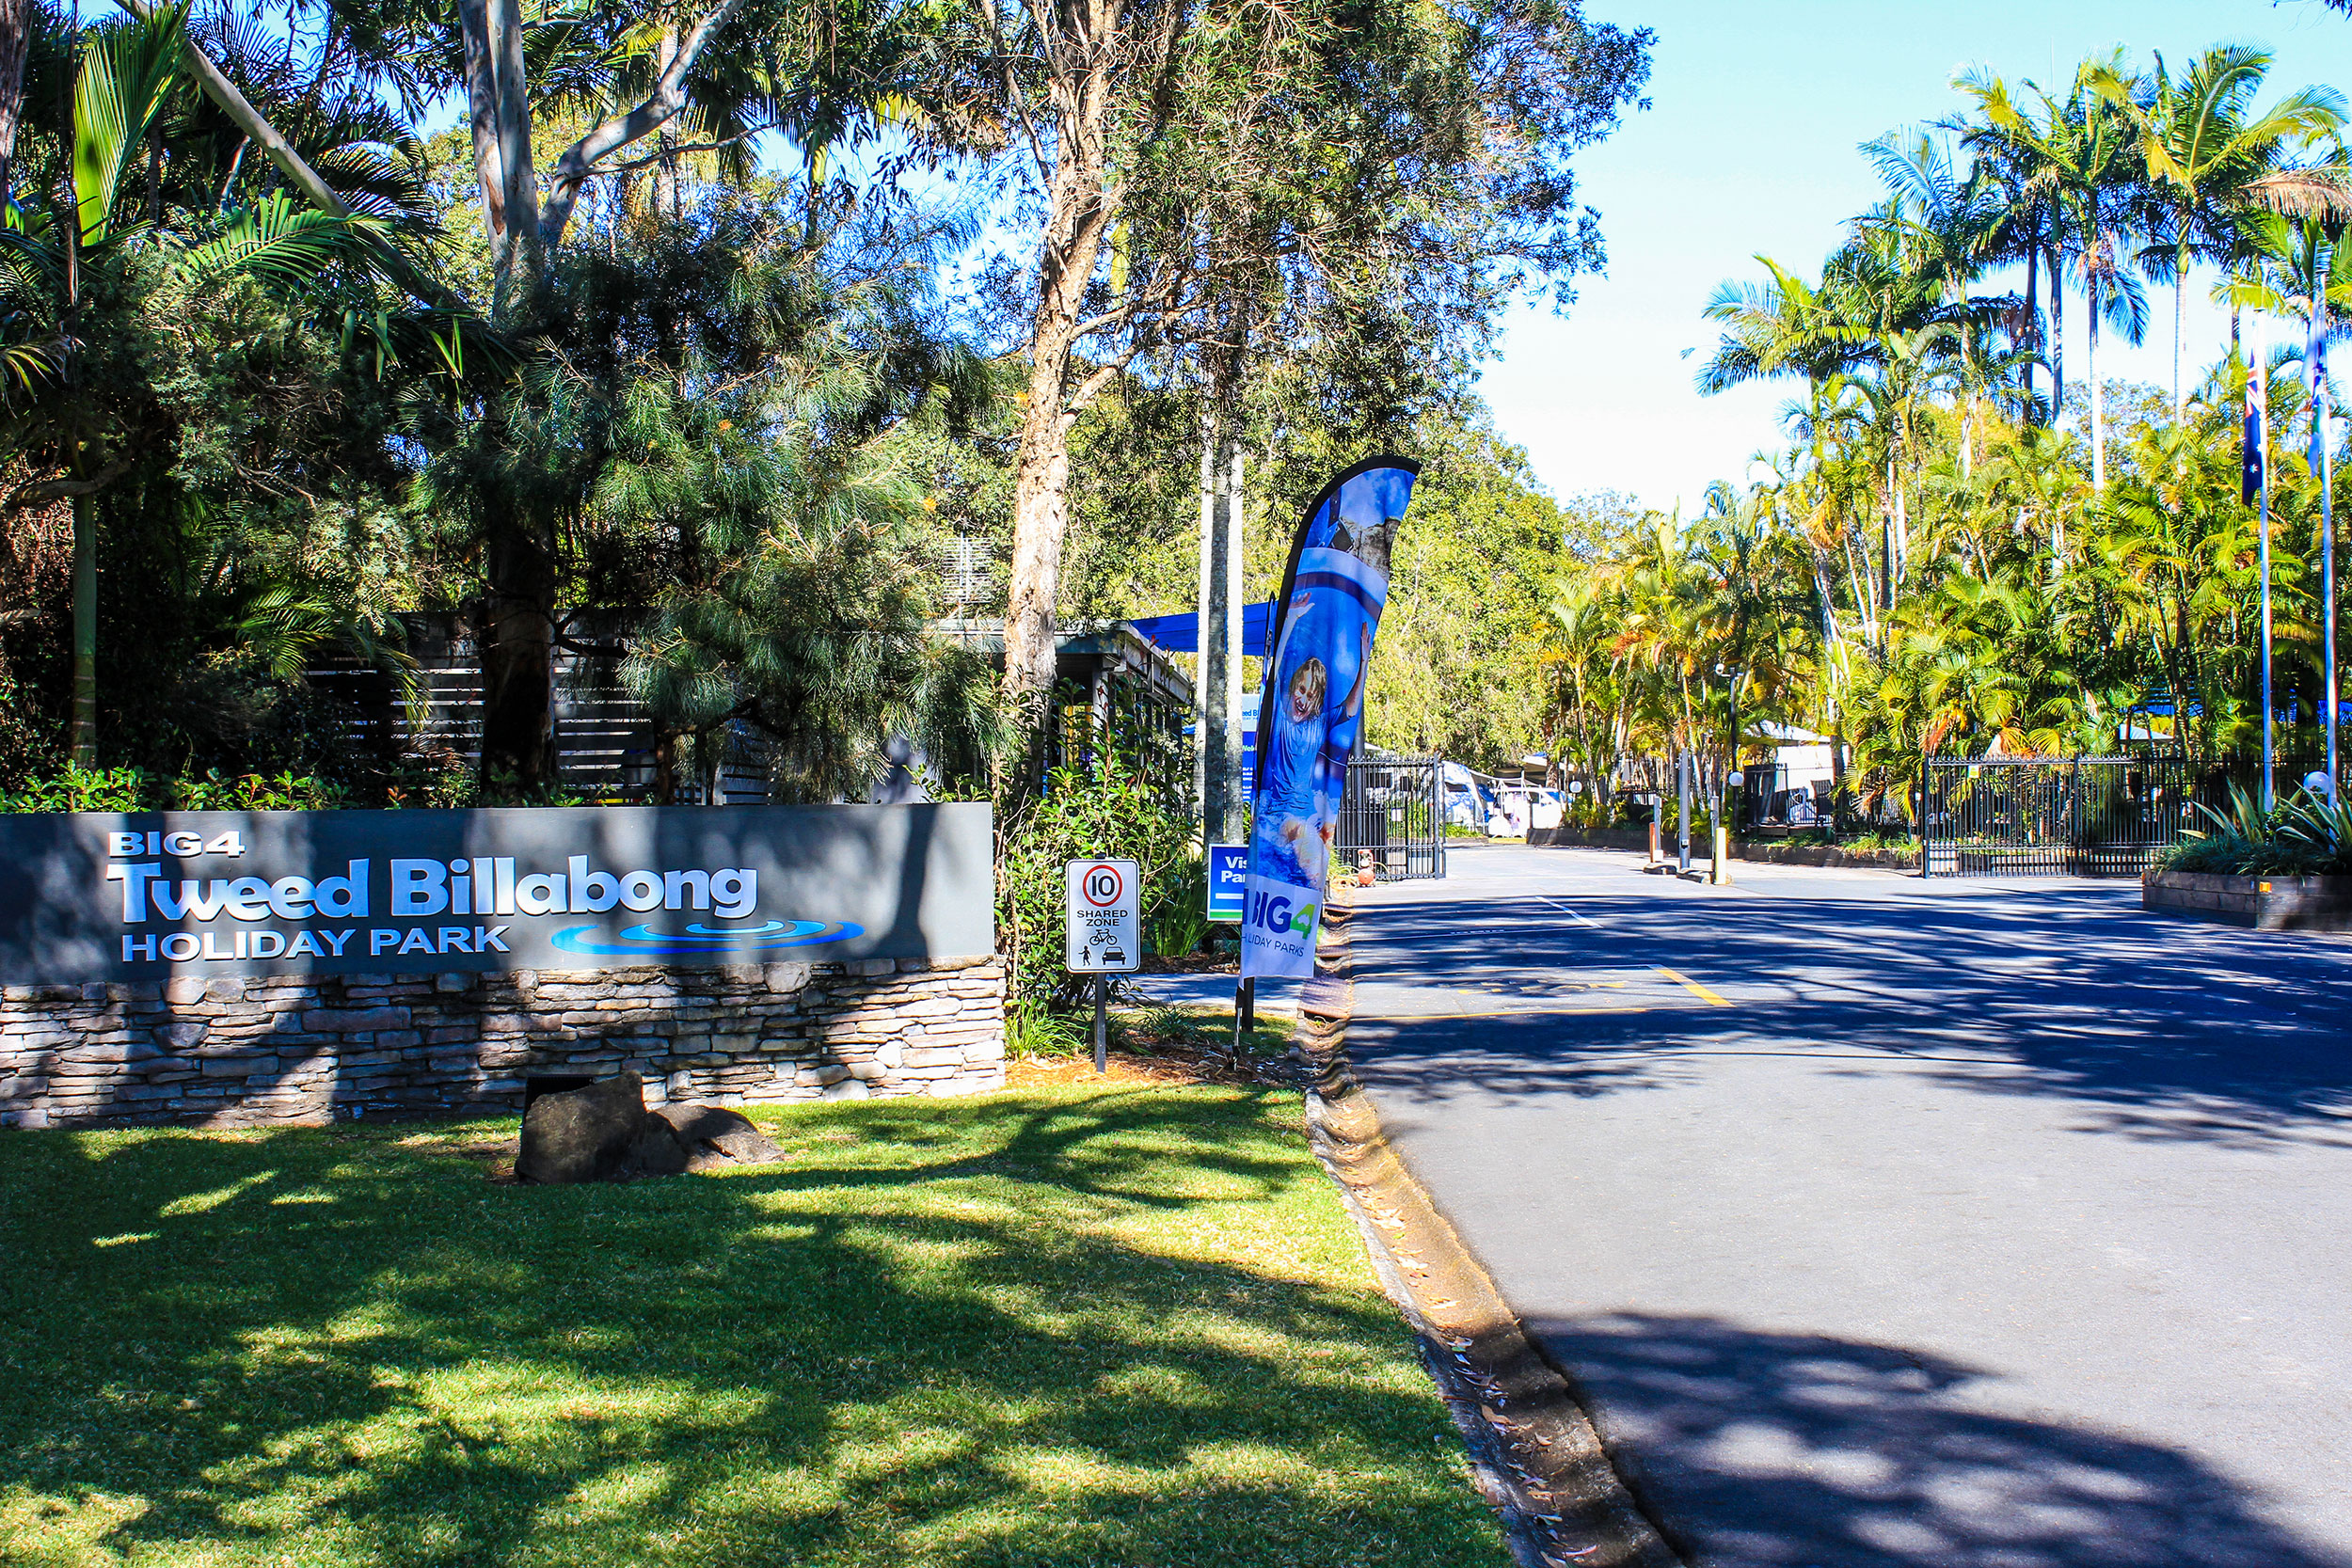 Name : BIG4 Tweed Billabong Holiday Park